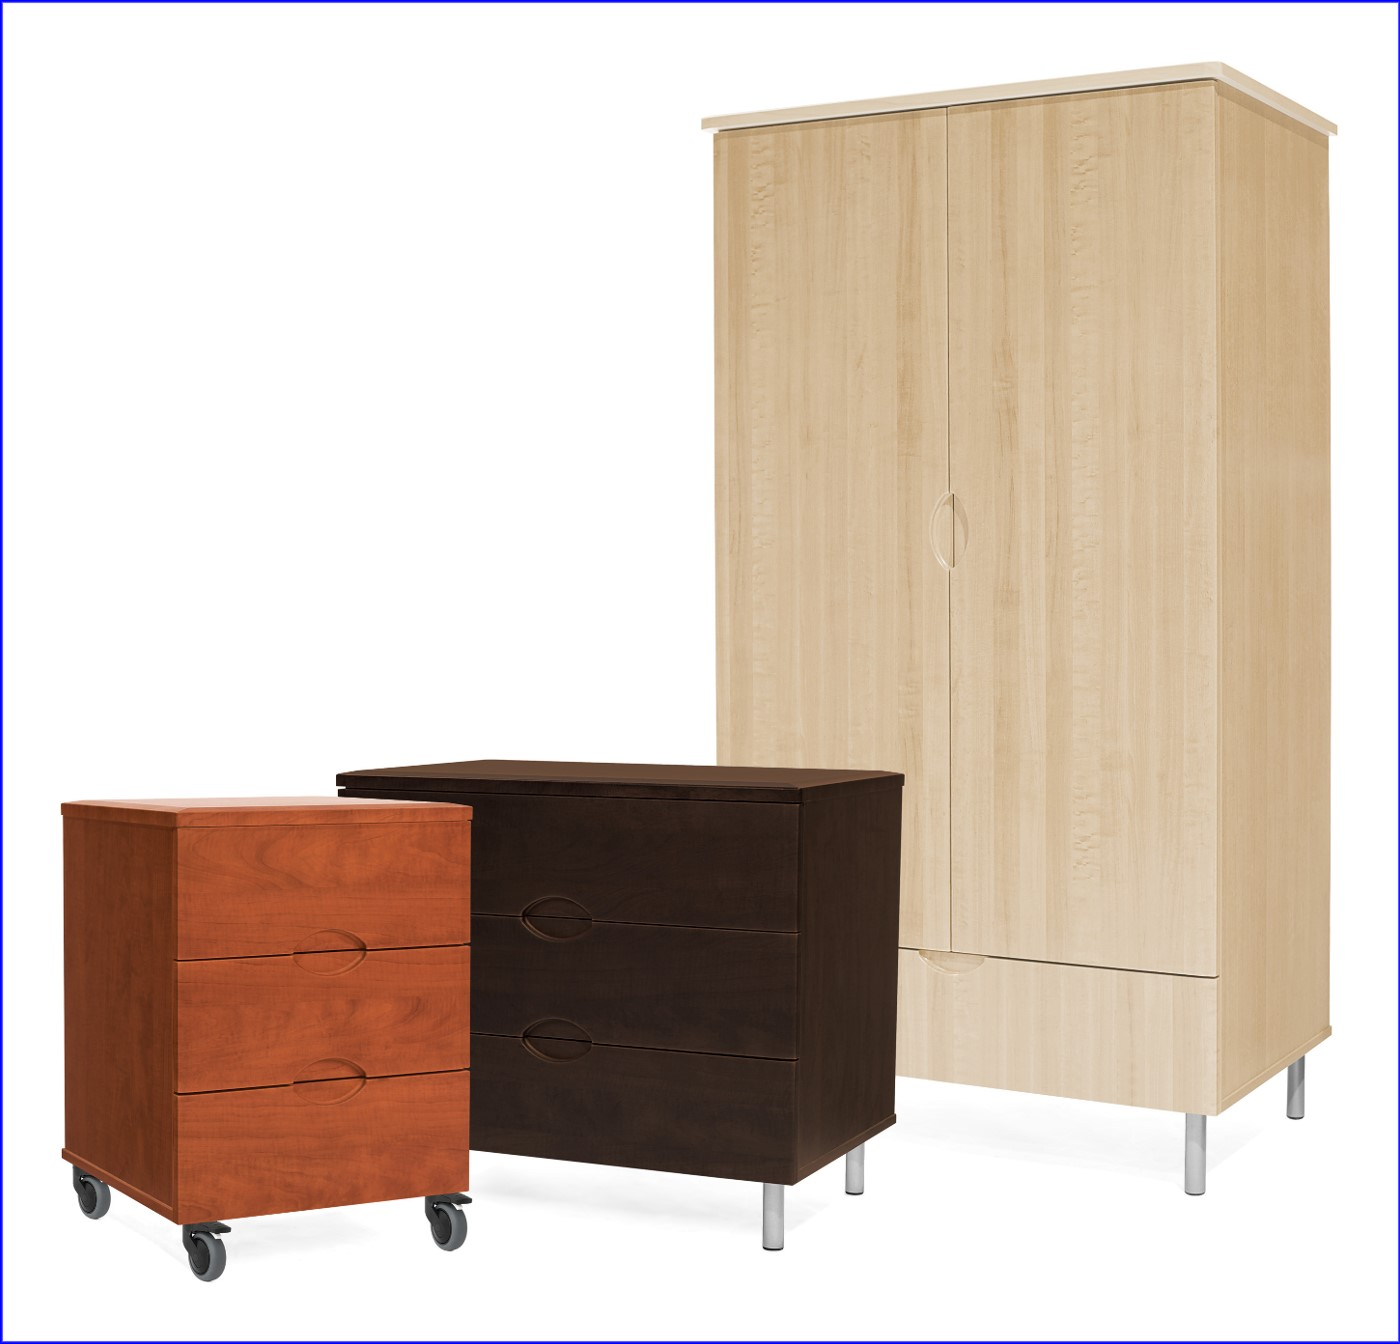 PORTER PATIENT ROOM CASEGOODS FURNITURE BY STANCE HEALTHCARE